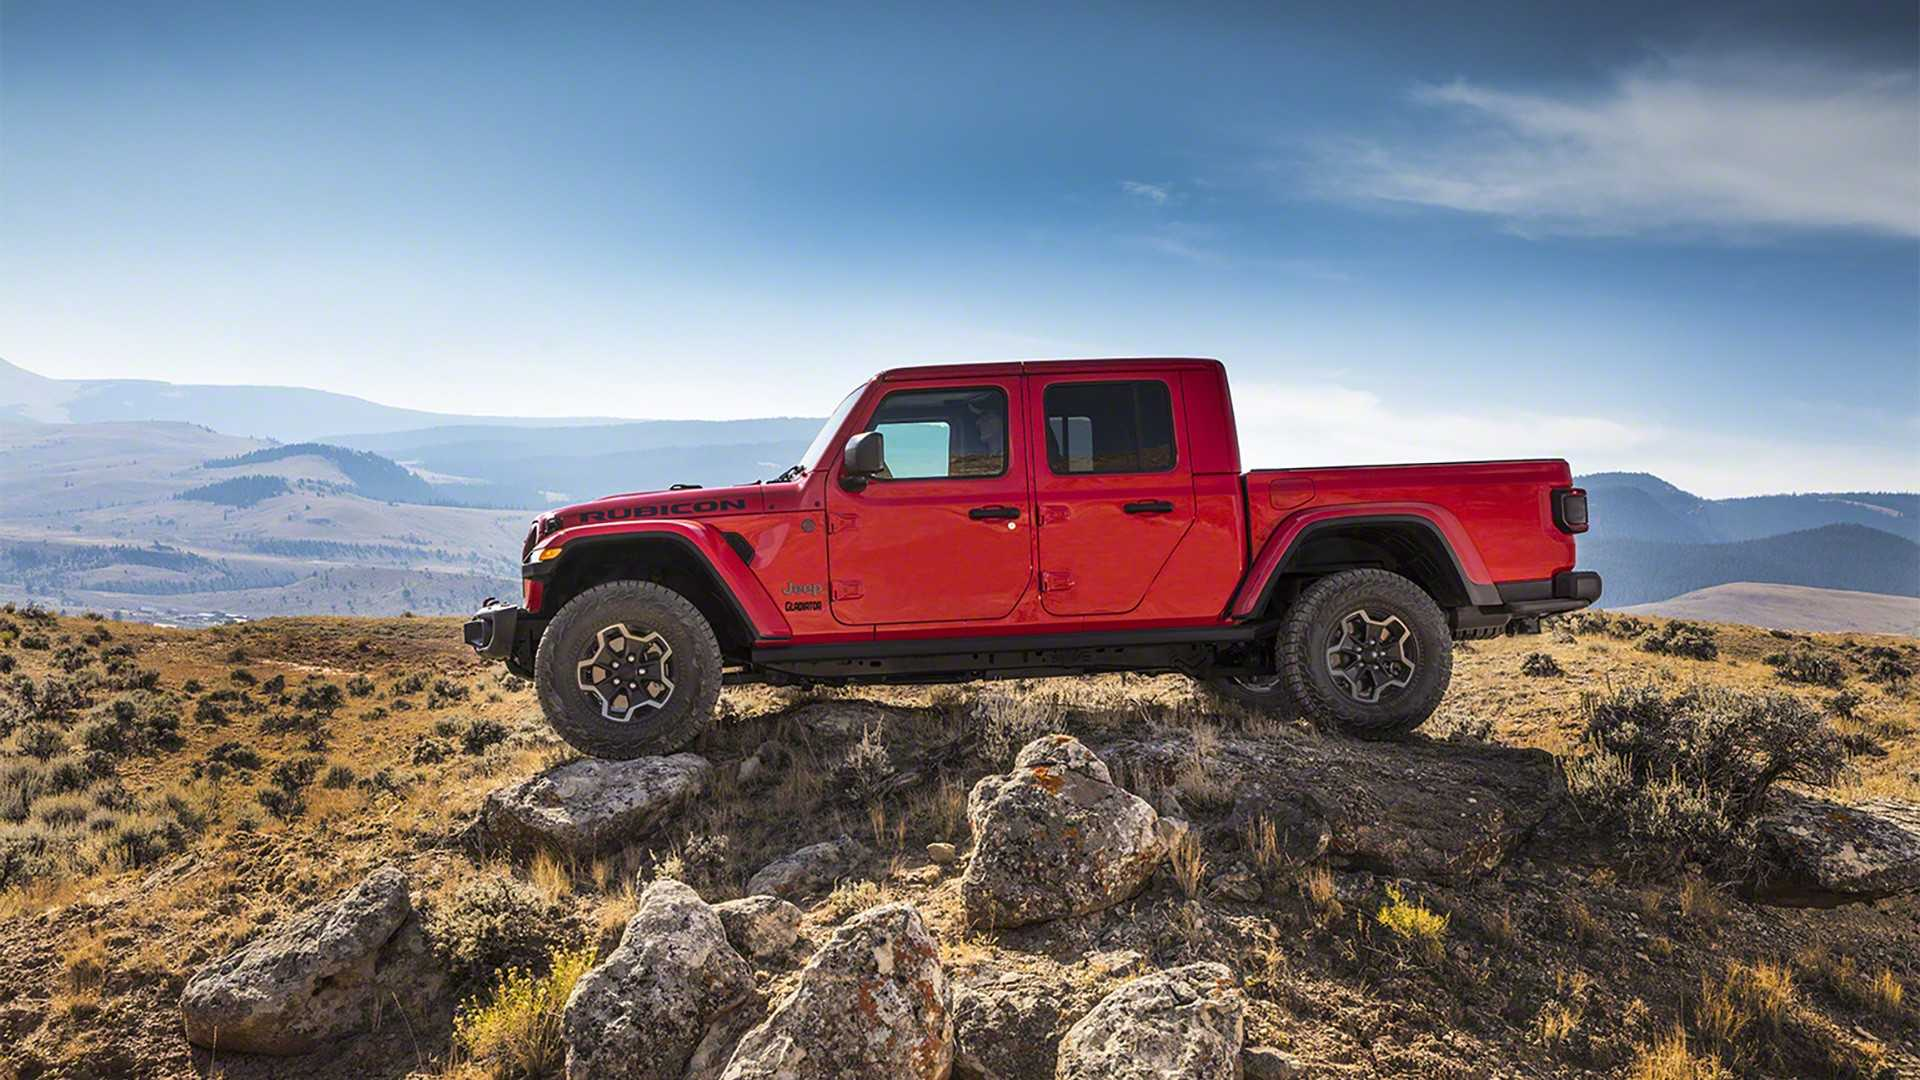 Ram Towing Capacity >> 2020 Jeep Gladiator Goes Official With Best-In-Class Towing Capacity - autoevolution